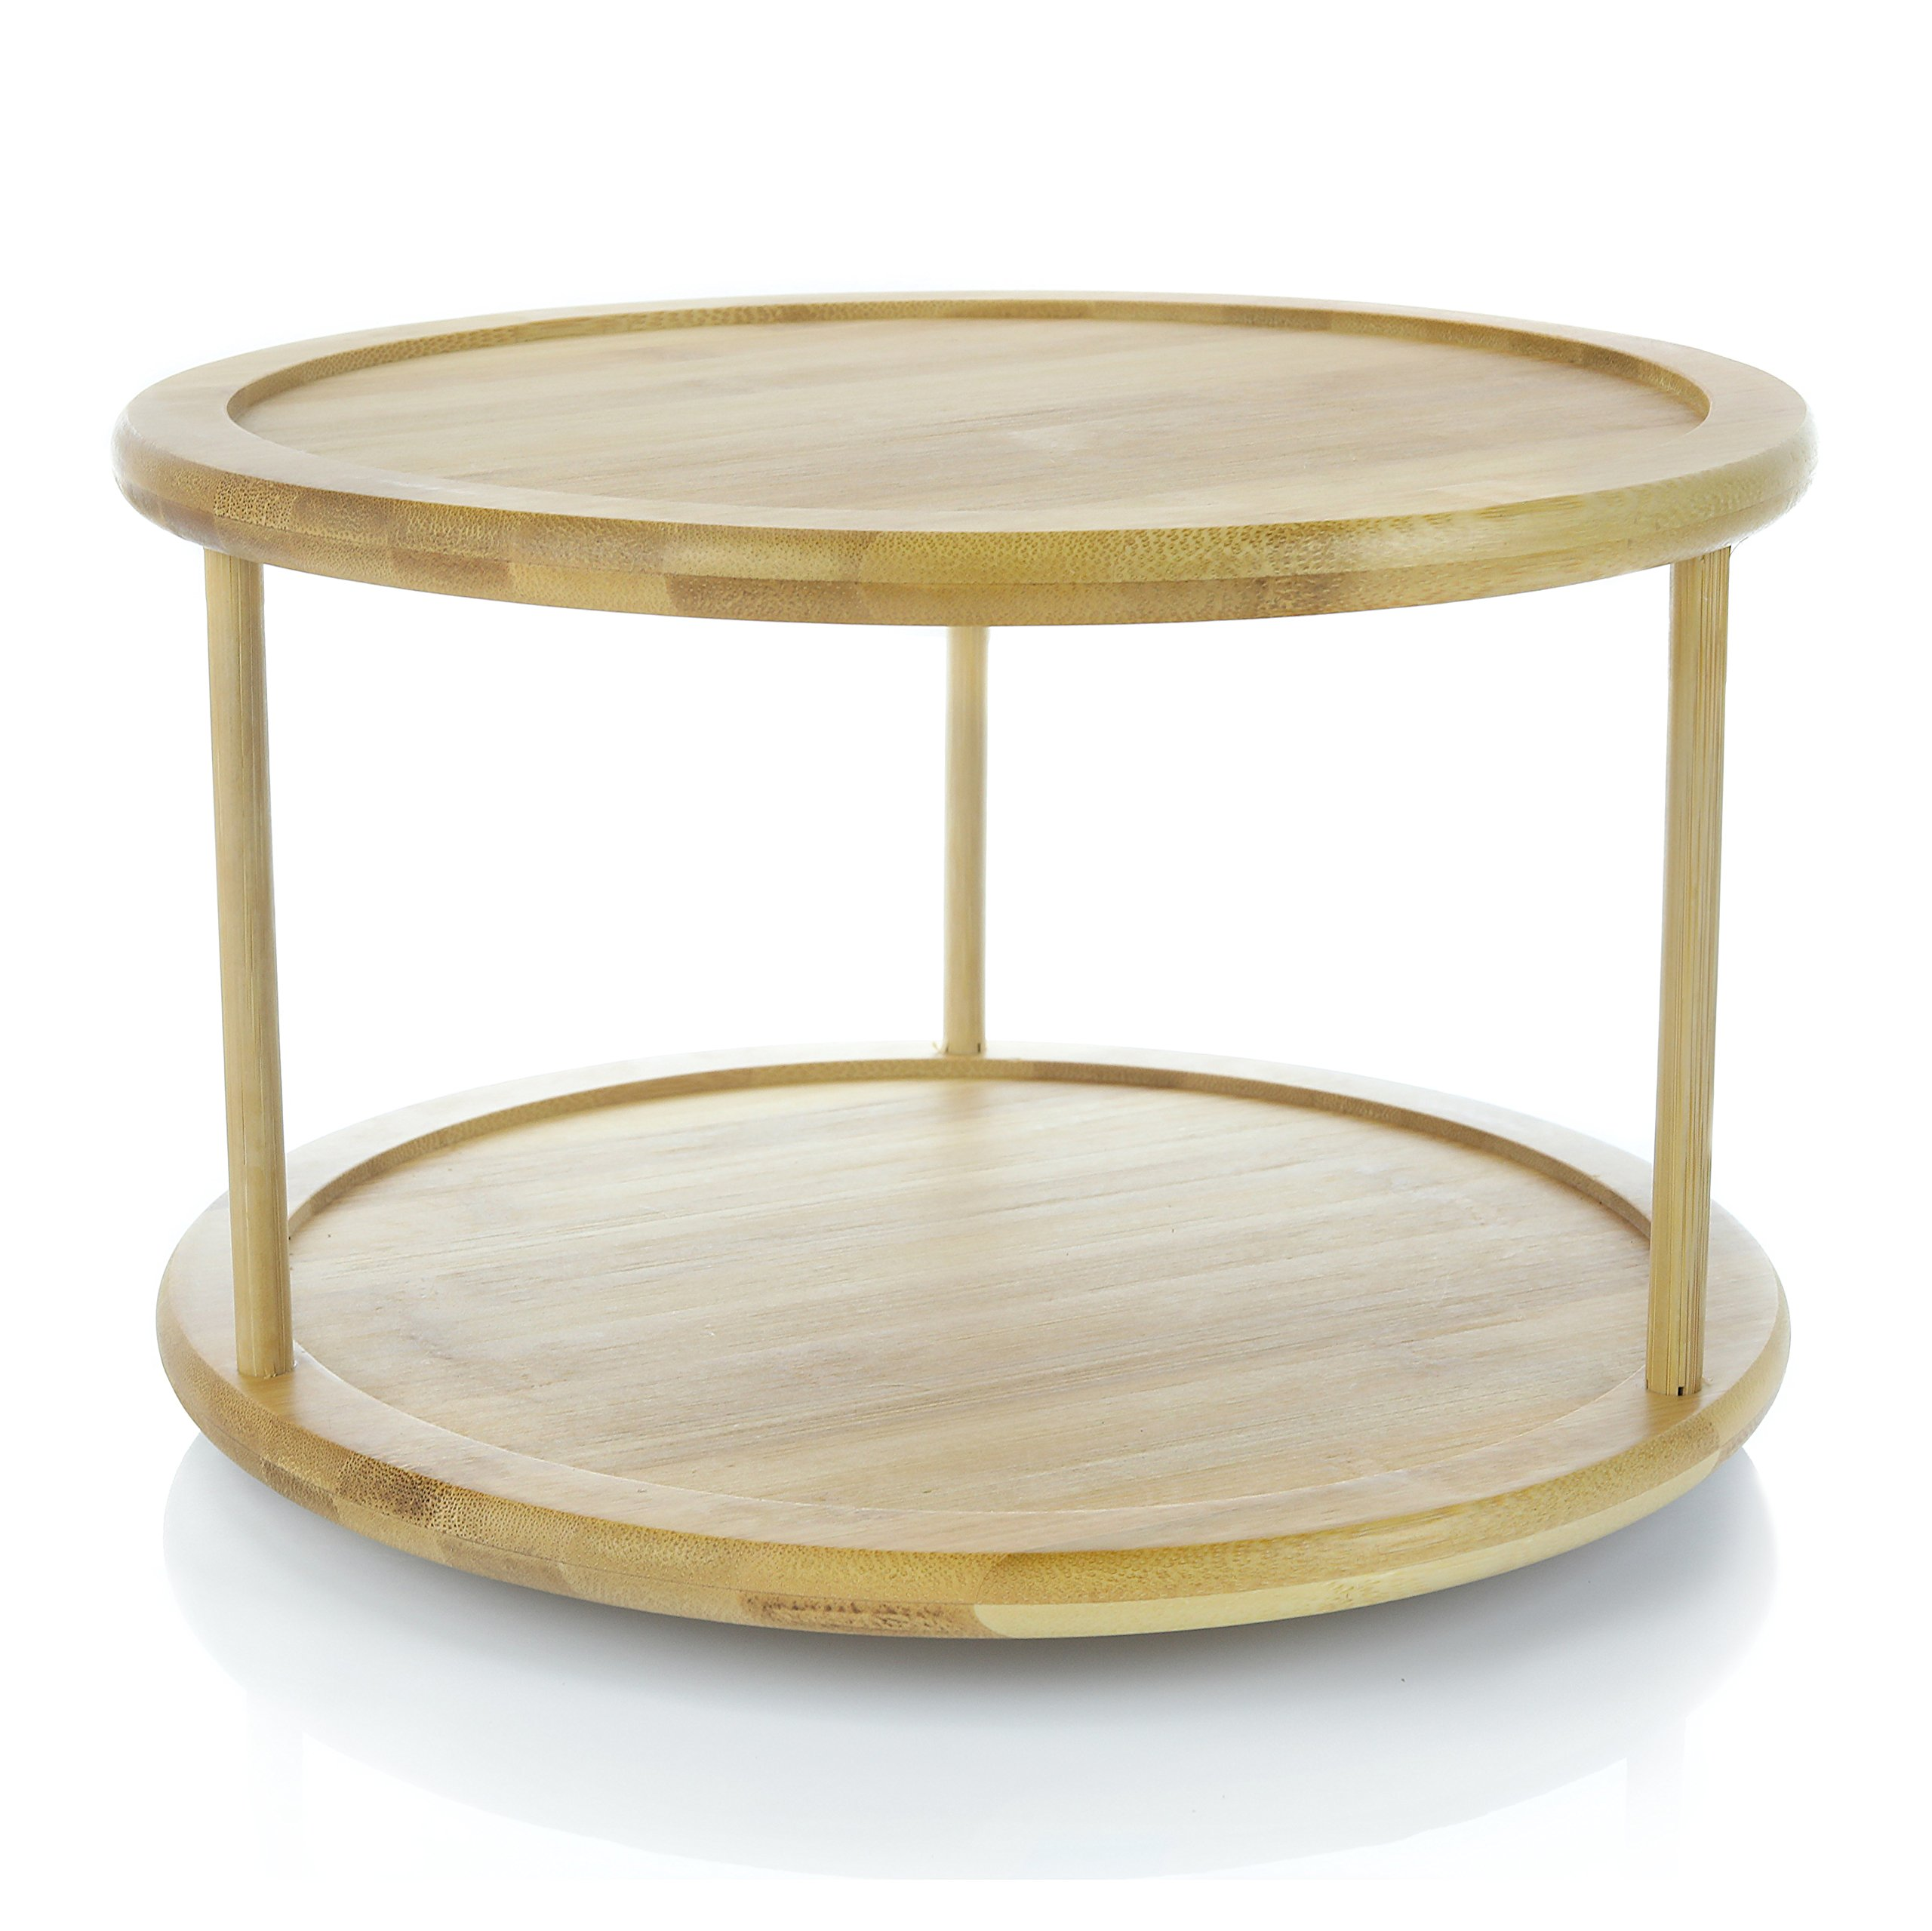 Adorn Home 2-Tier Premium Bamboo Lazy Susan | Lazy Susan Turntable | Lazy Susan Spice Rack | Kitchen Cabinet Organizer | Vanity Makeup Organizer | 12'' Turntable | (actual size 11.8 inches diameter)